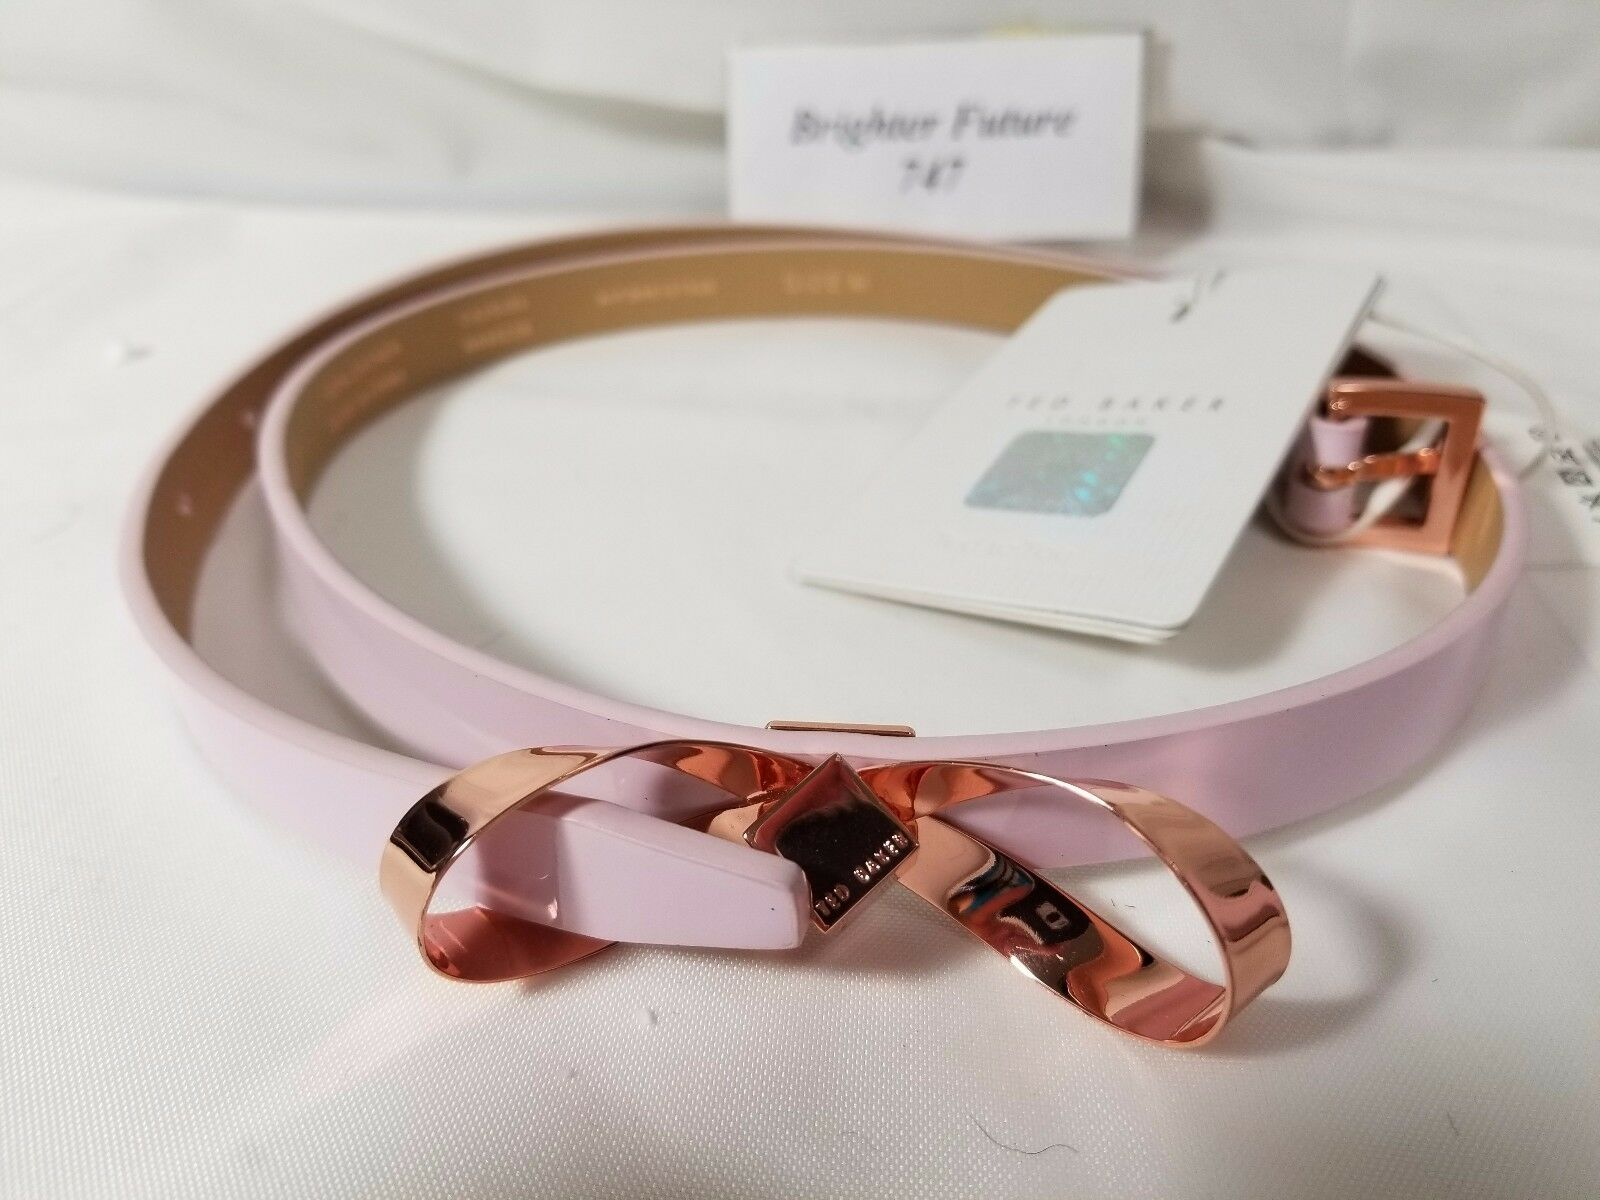 f50c8368f BNWT TED BAKER Pale Pink Rose Gold Bow Front Bryano Leather Skinny Belt  size M